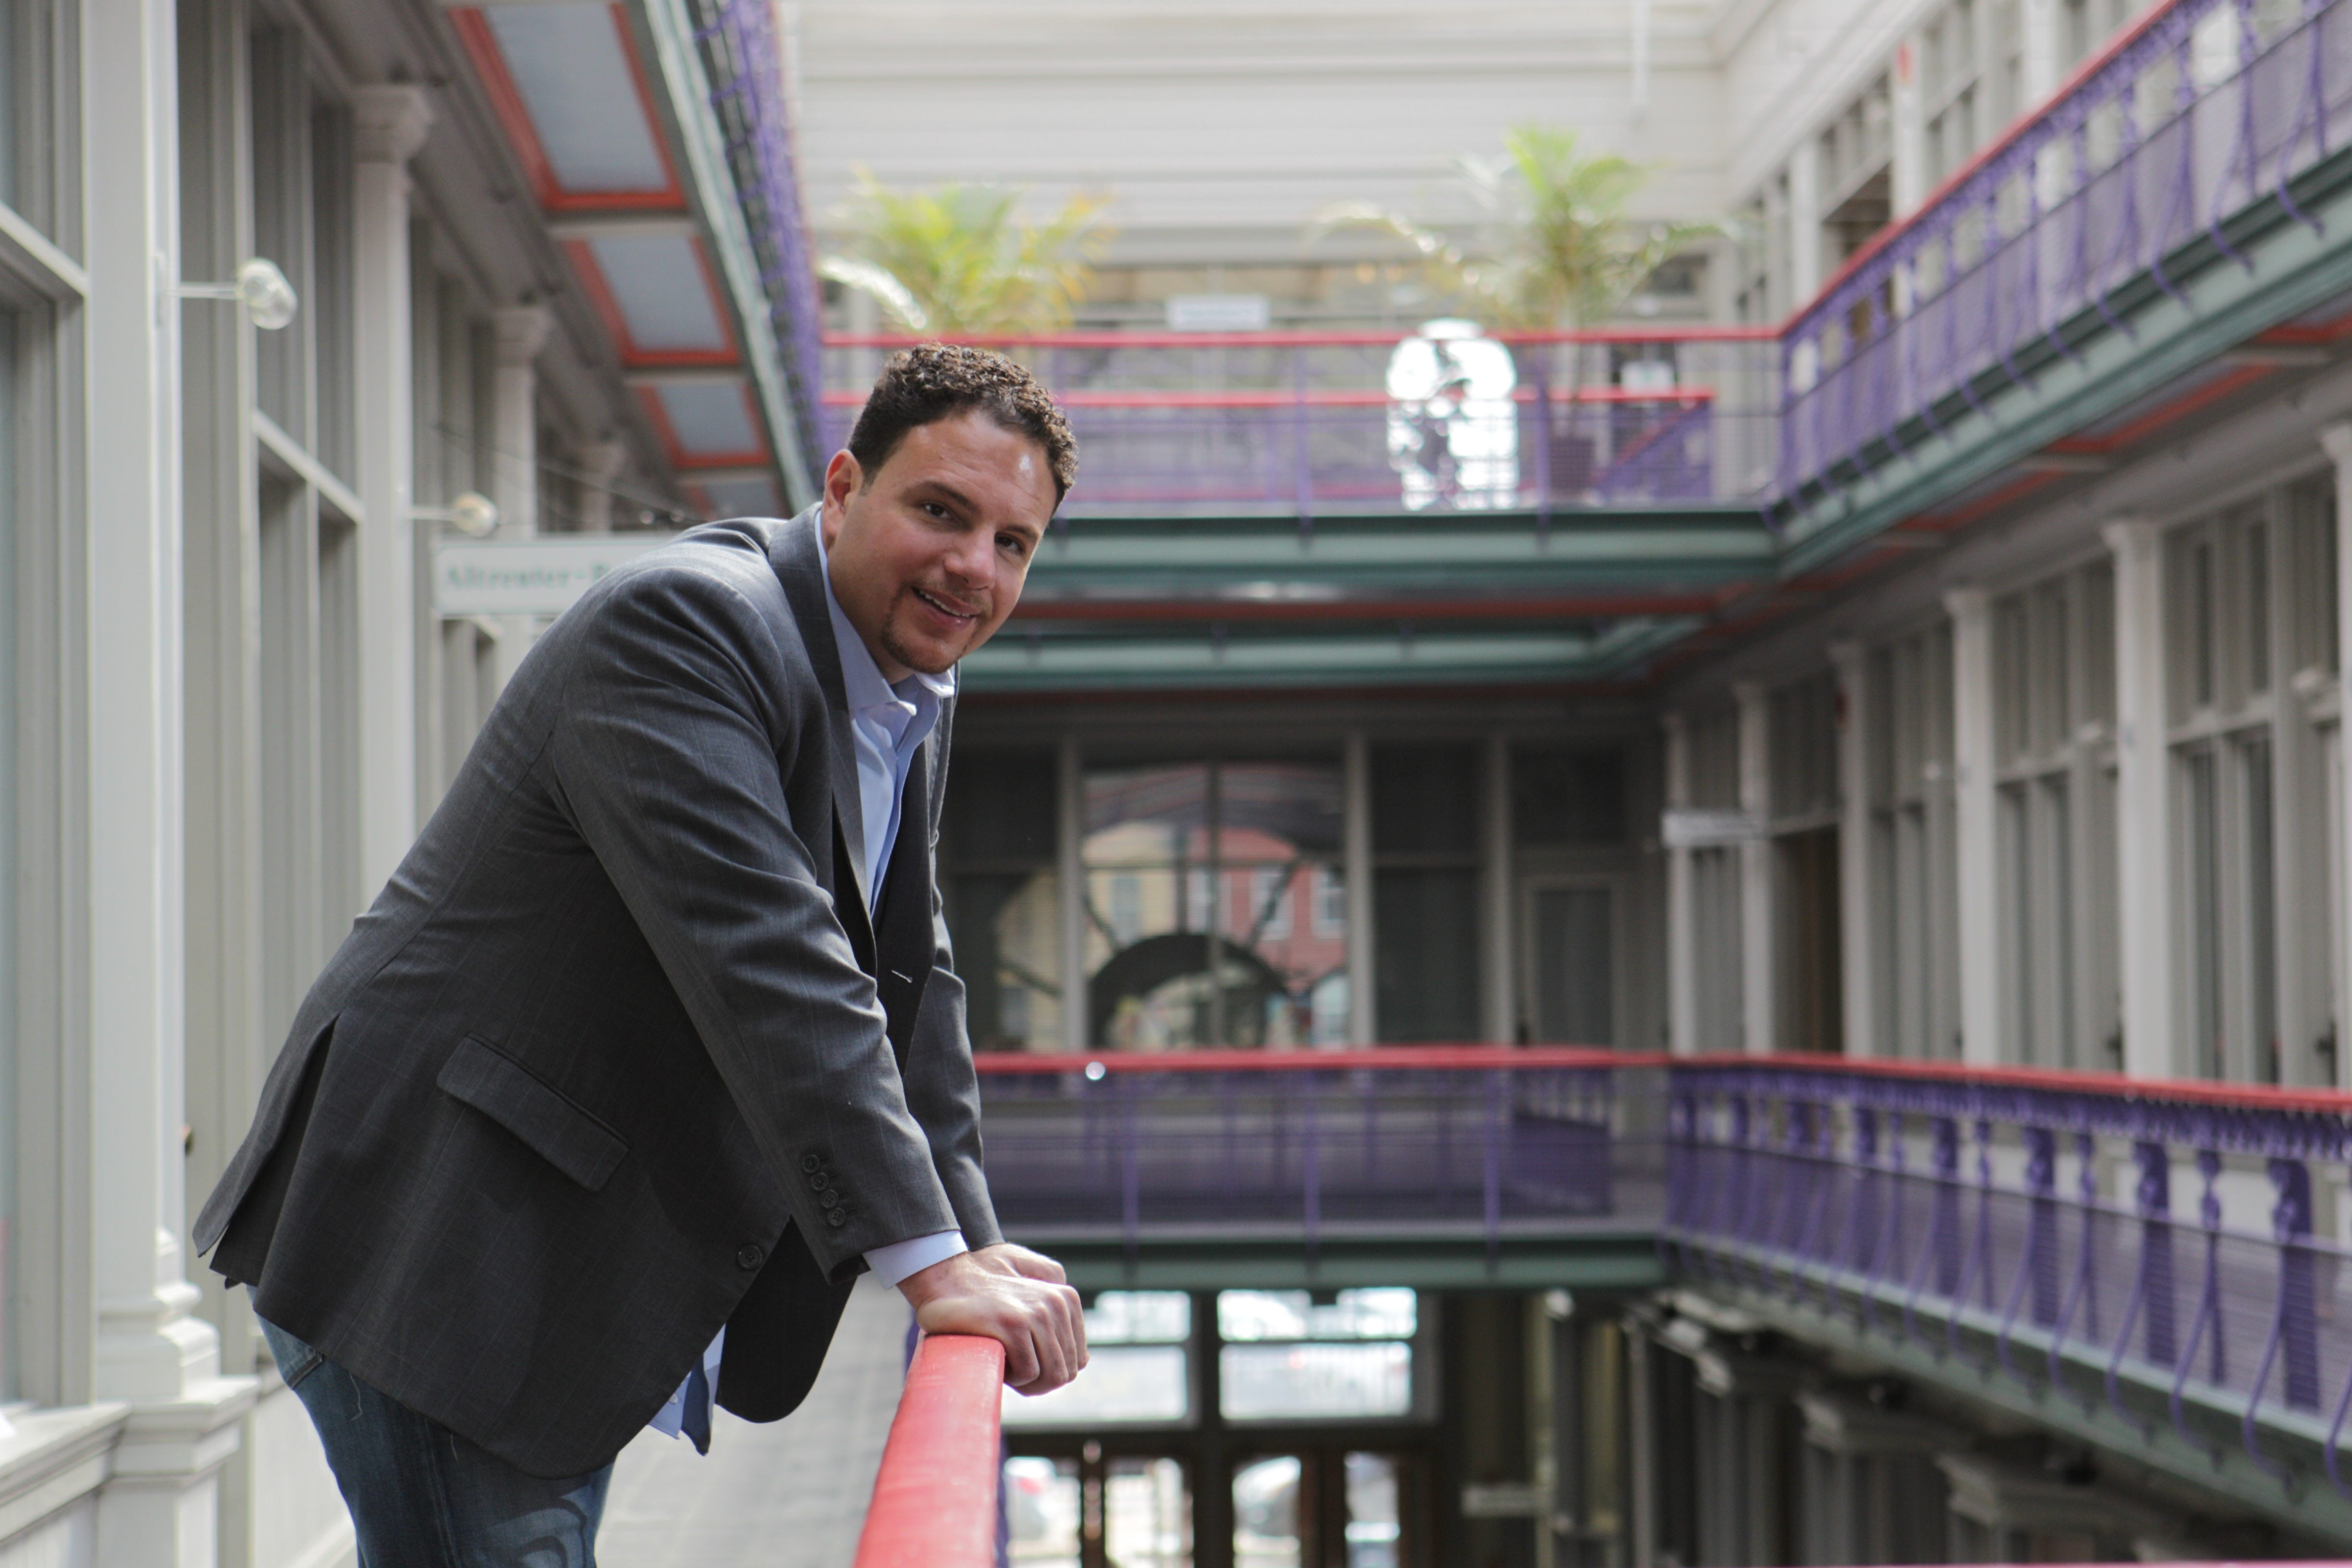 Developer Nick Sinatra is among those in the business community who are making it their business to help improve education in the Buffalo City School District.